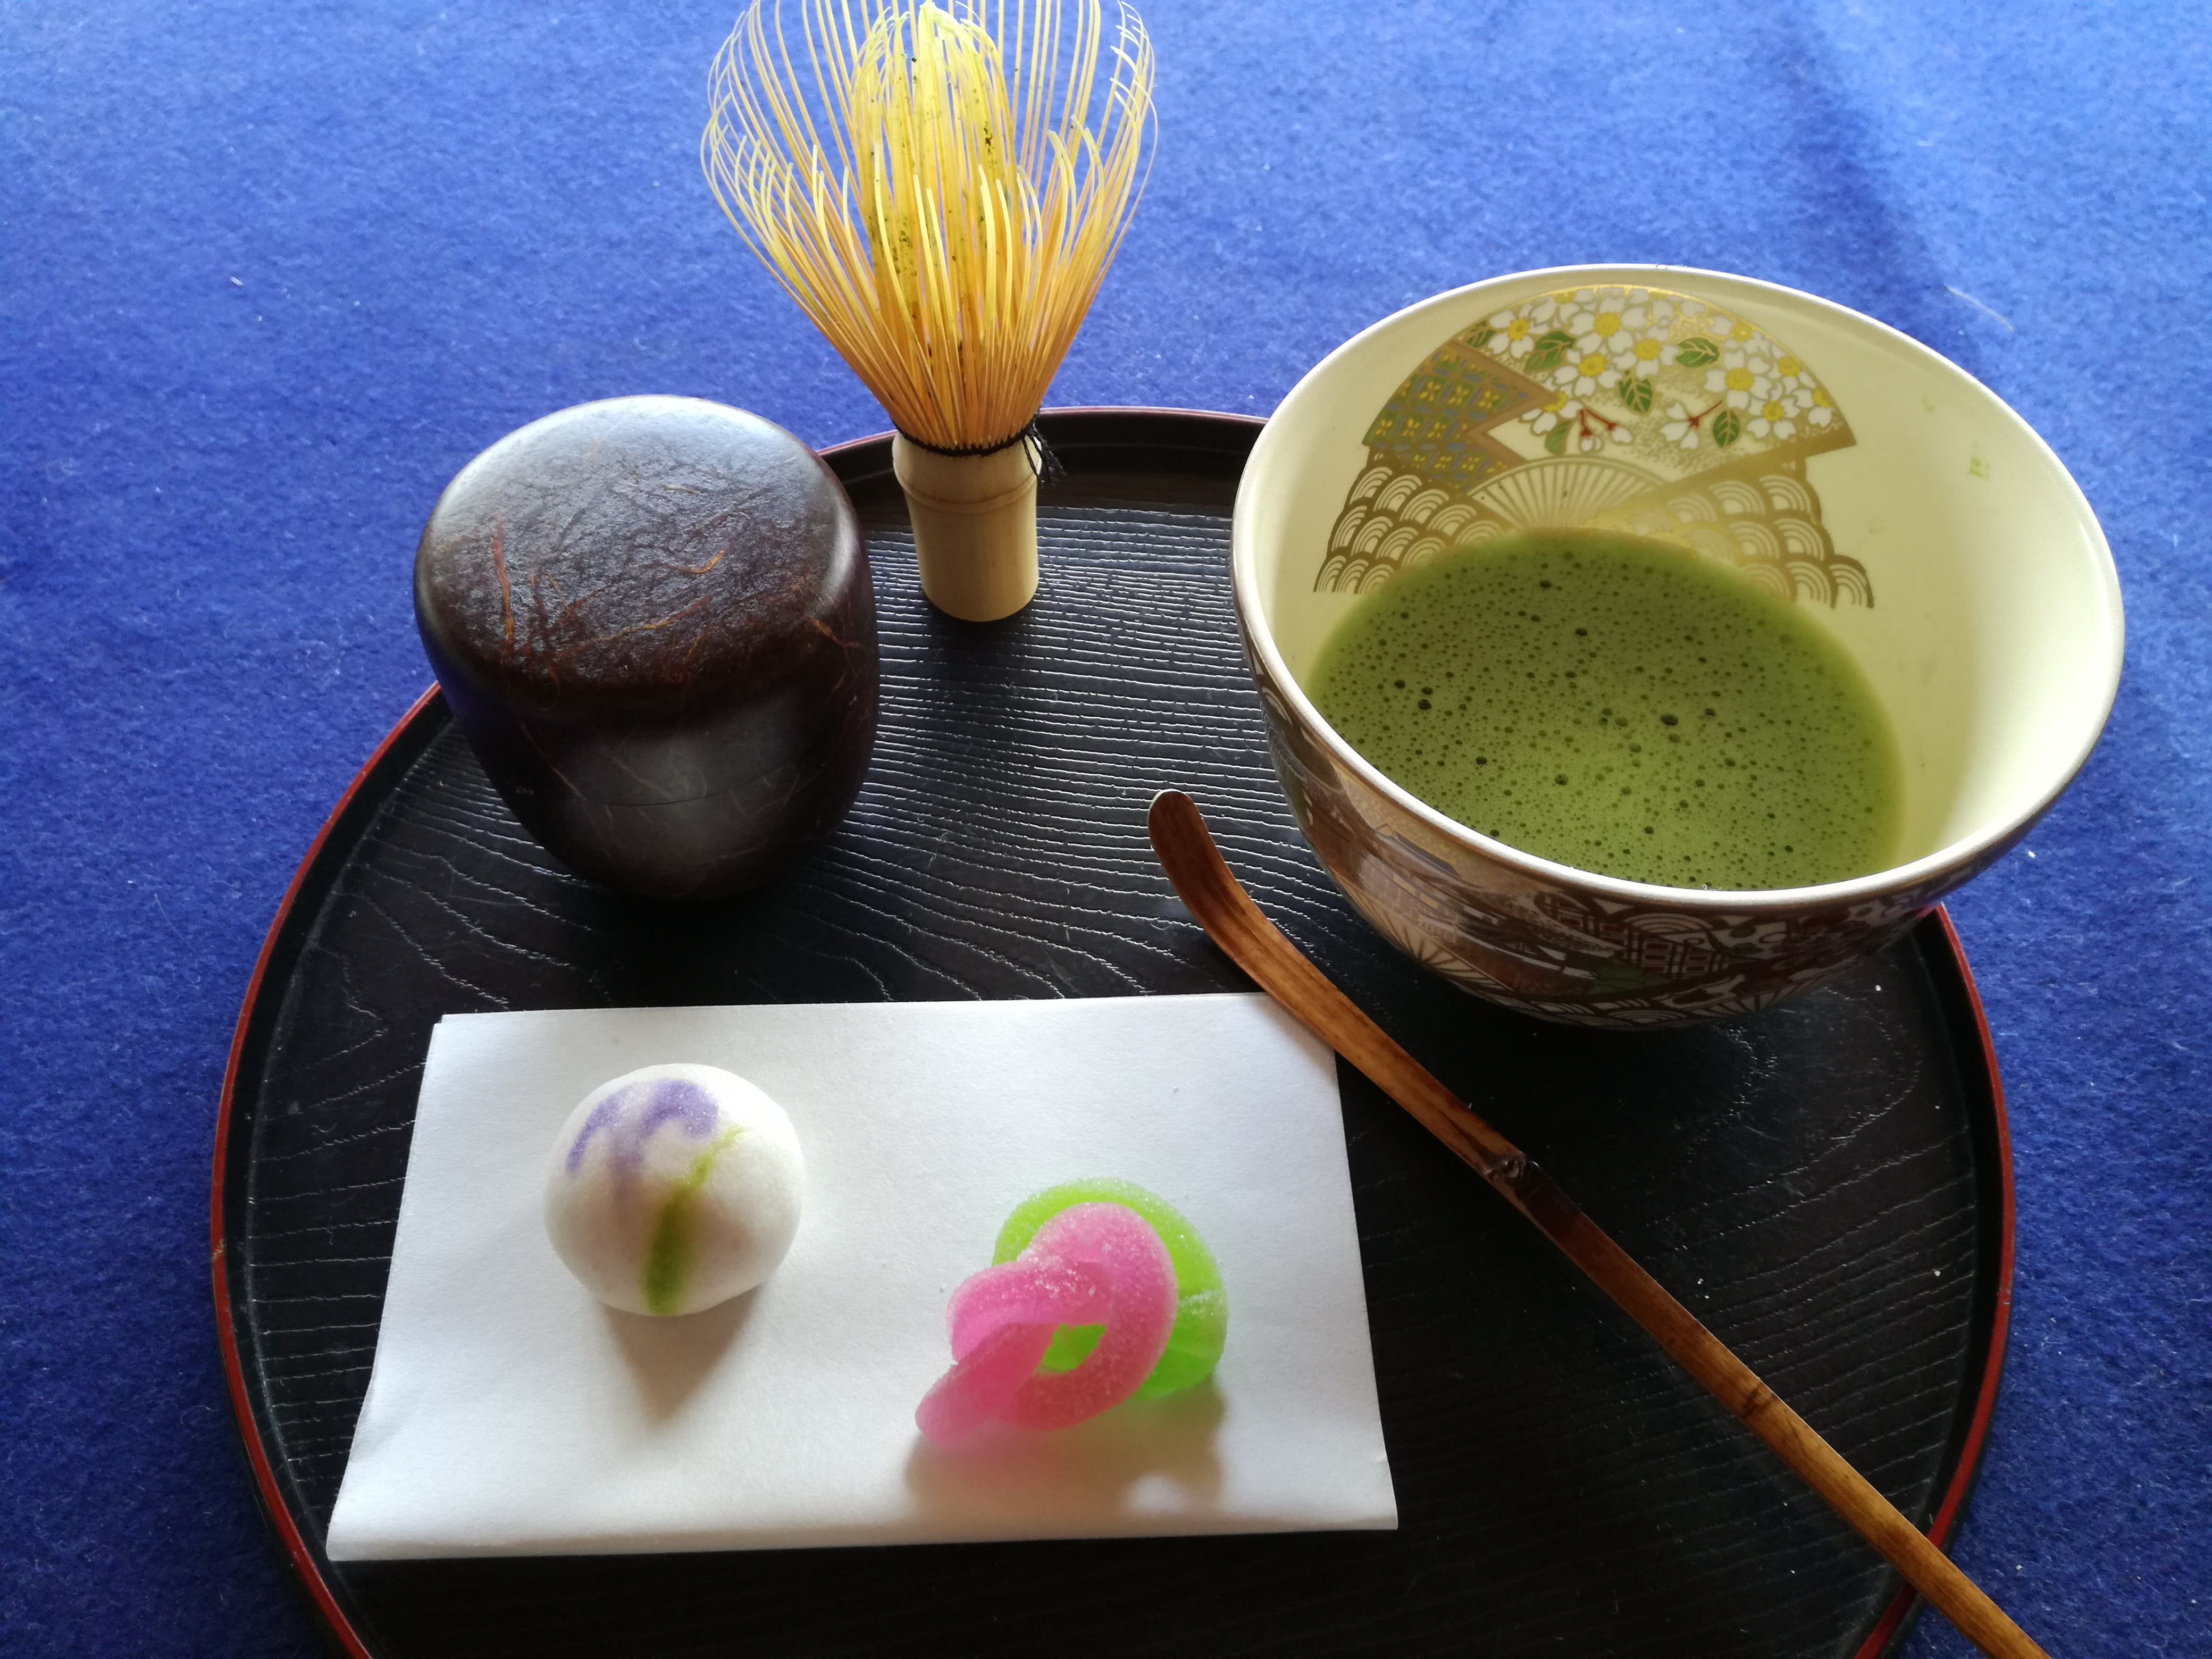 Experience a tea ceremony or wearing kimono at Bonsai Museum